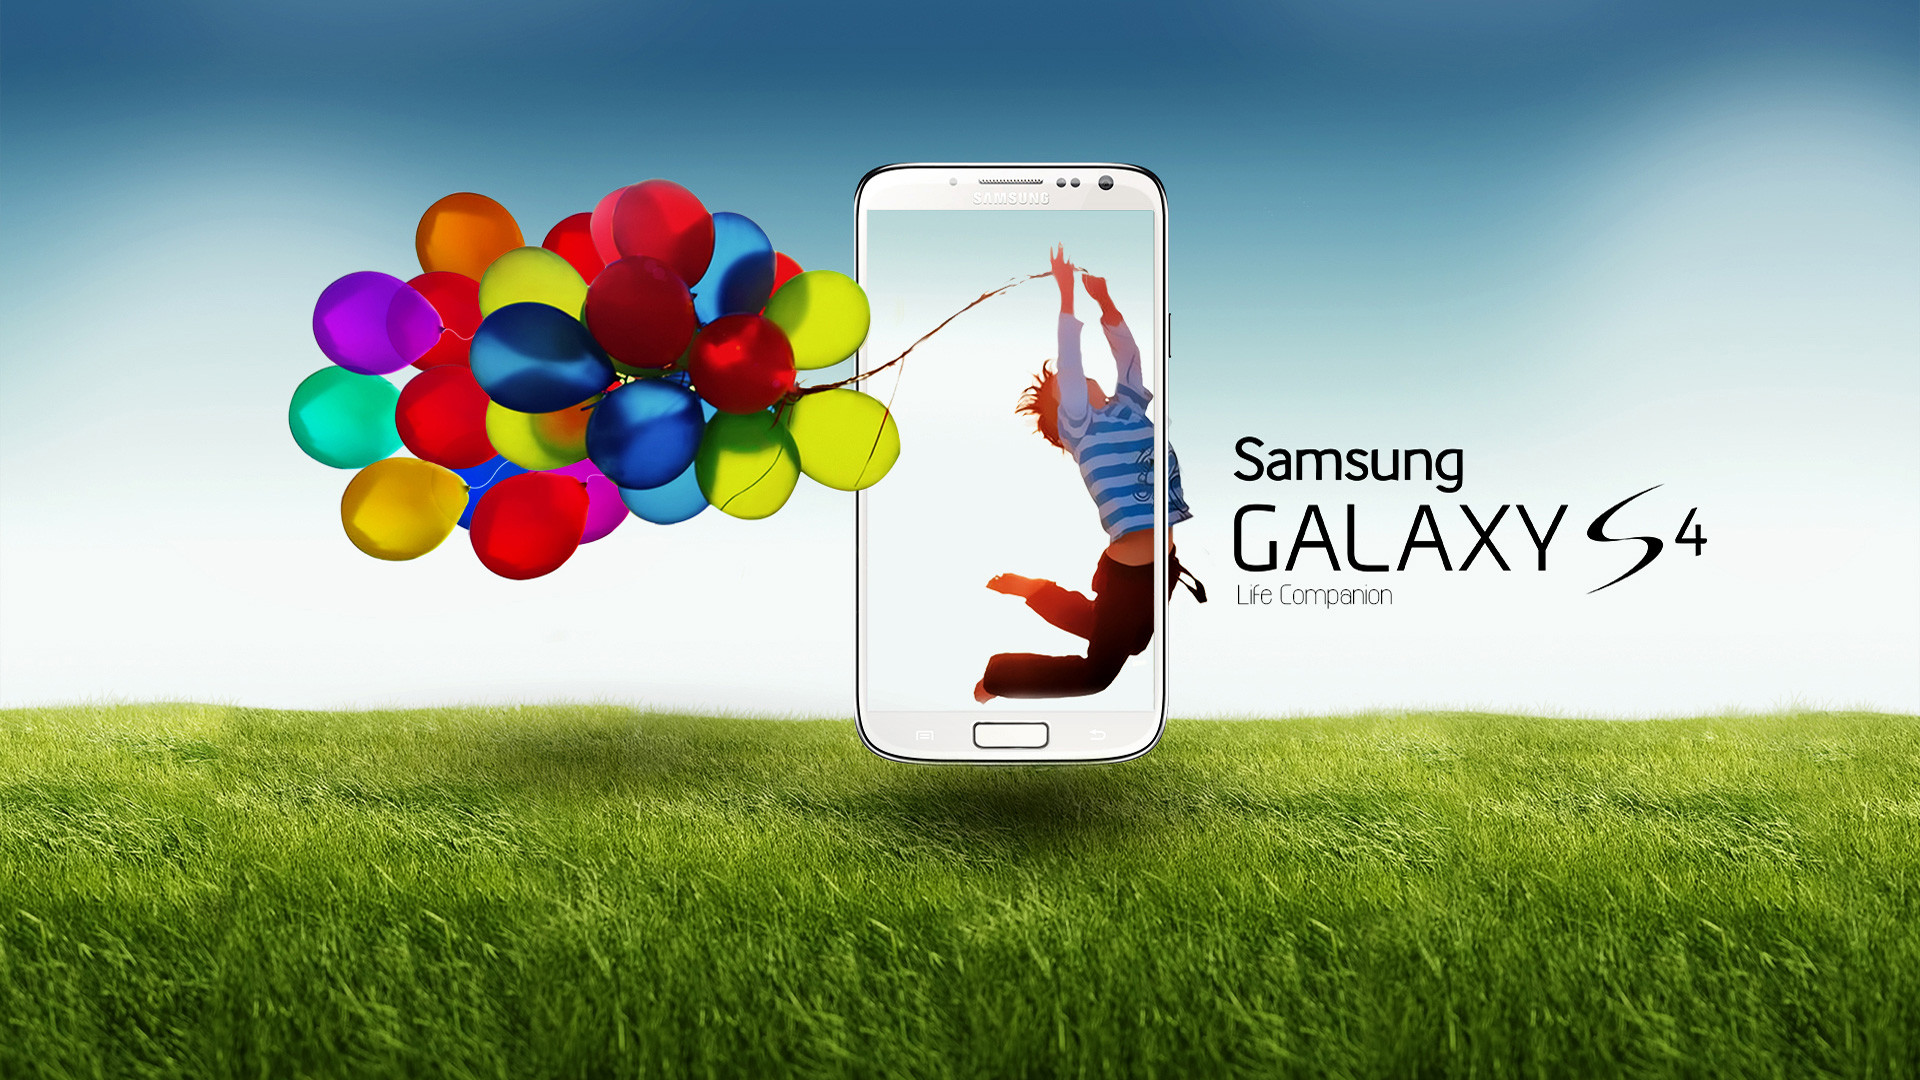 samsung-galaxy-s4-wallpapers-1920x1080